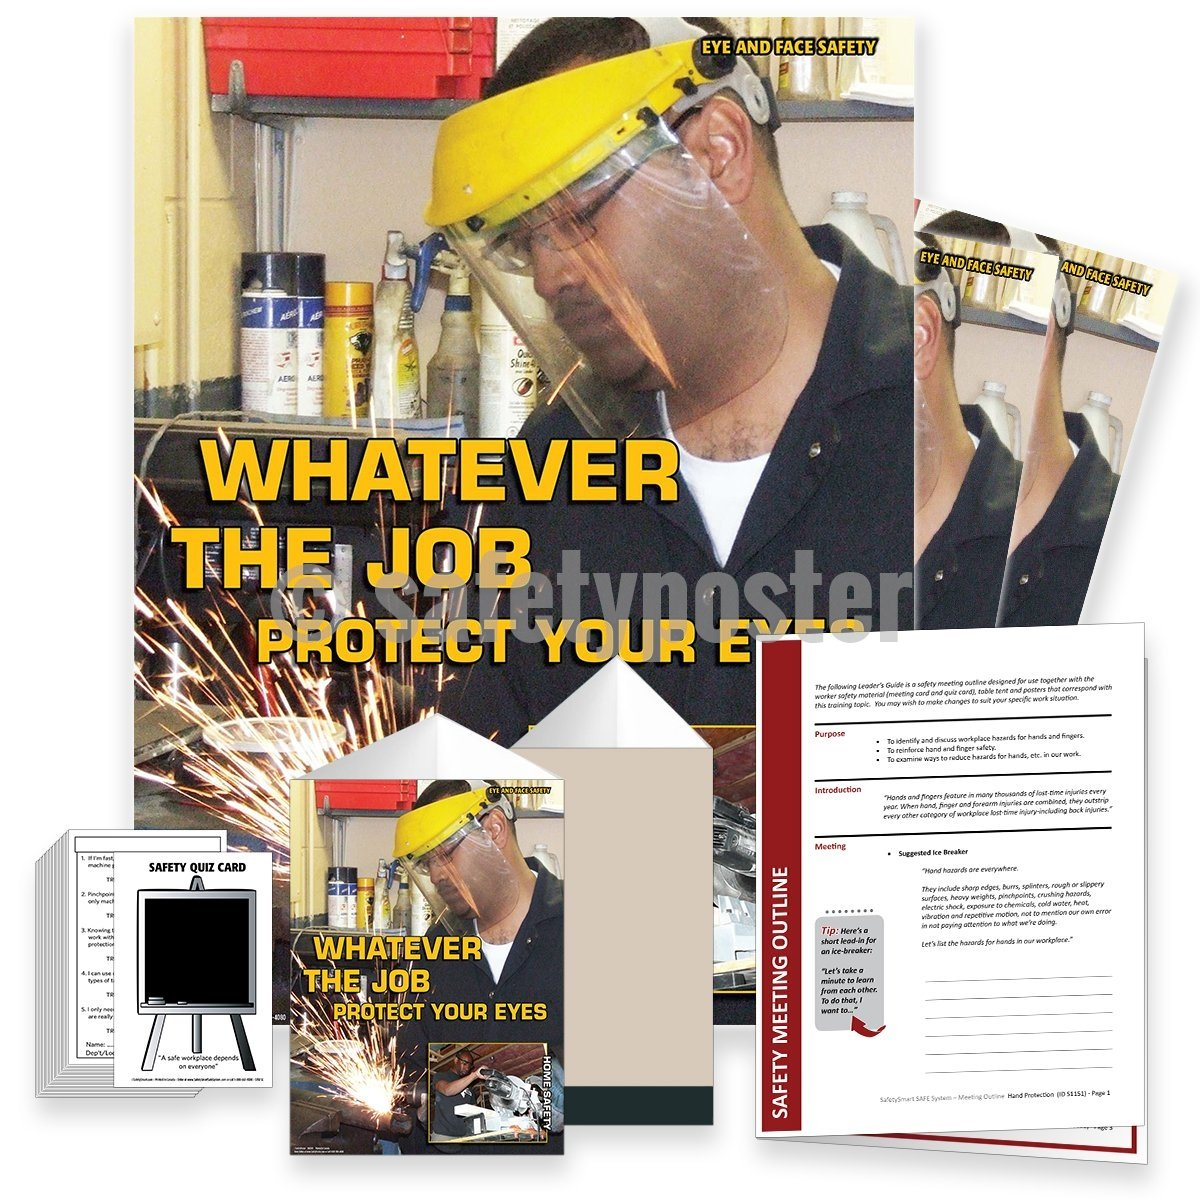 Safety Meeting Kit - Whatever The Job Protect Your Eyes Kits